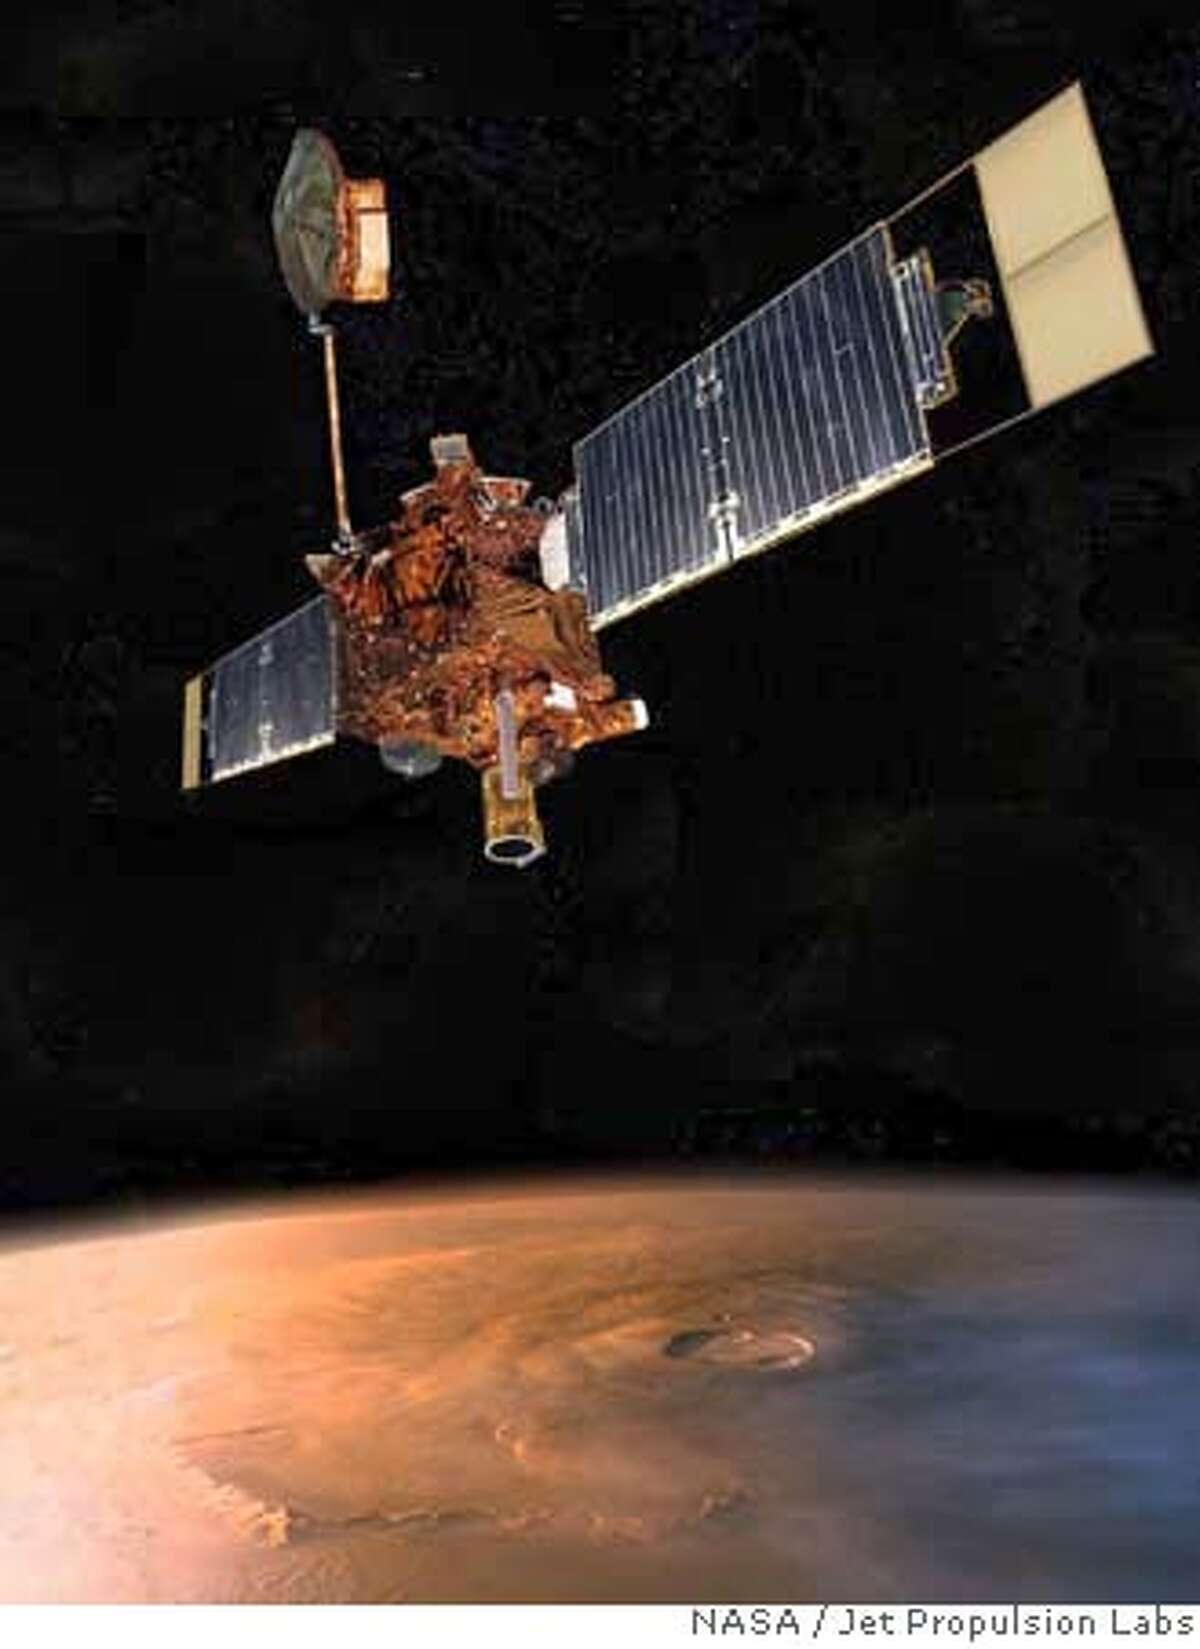 This artist rendering released by NASA's Jet Propulsion Laboratory, shows the Mars Global Surveyor in orbit around Mars. According to a preliminary report released Friday, April 13, 2007, human error triggered a cascade of events that caused the battery to fail on the Mars Global Surveyor last year. An internal NASA board determined that power loss likely doomed the spacecraft after a decade of meticulously mapping the Red Planet. (AP Photo/NASA, Jet Propulsion Labs) ARTIST RENDERING HANDOUT RELEASED BY NASA